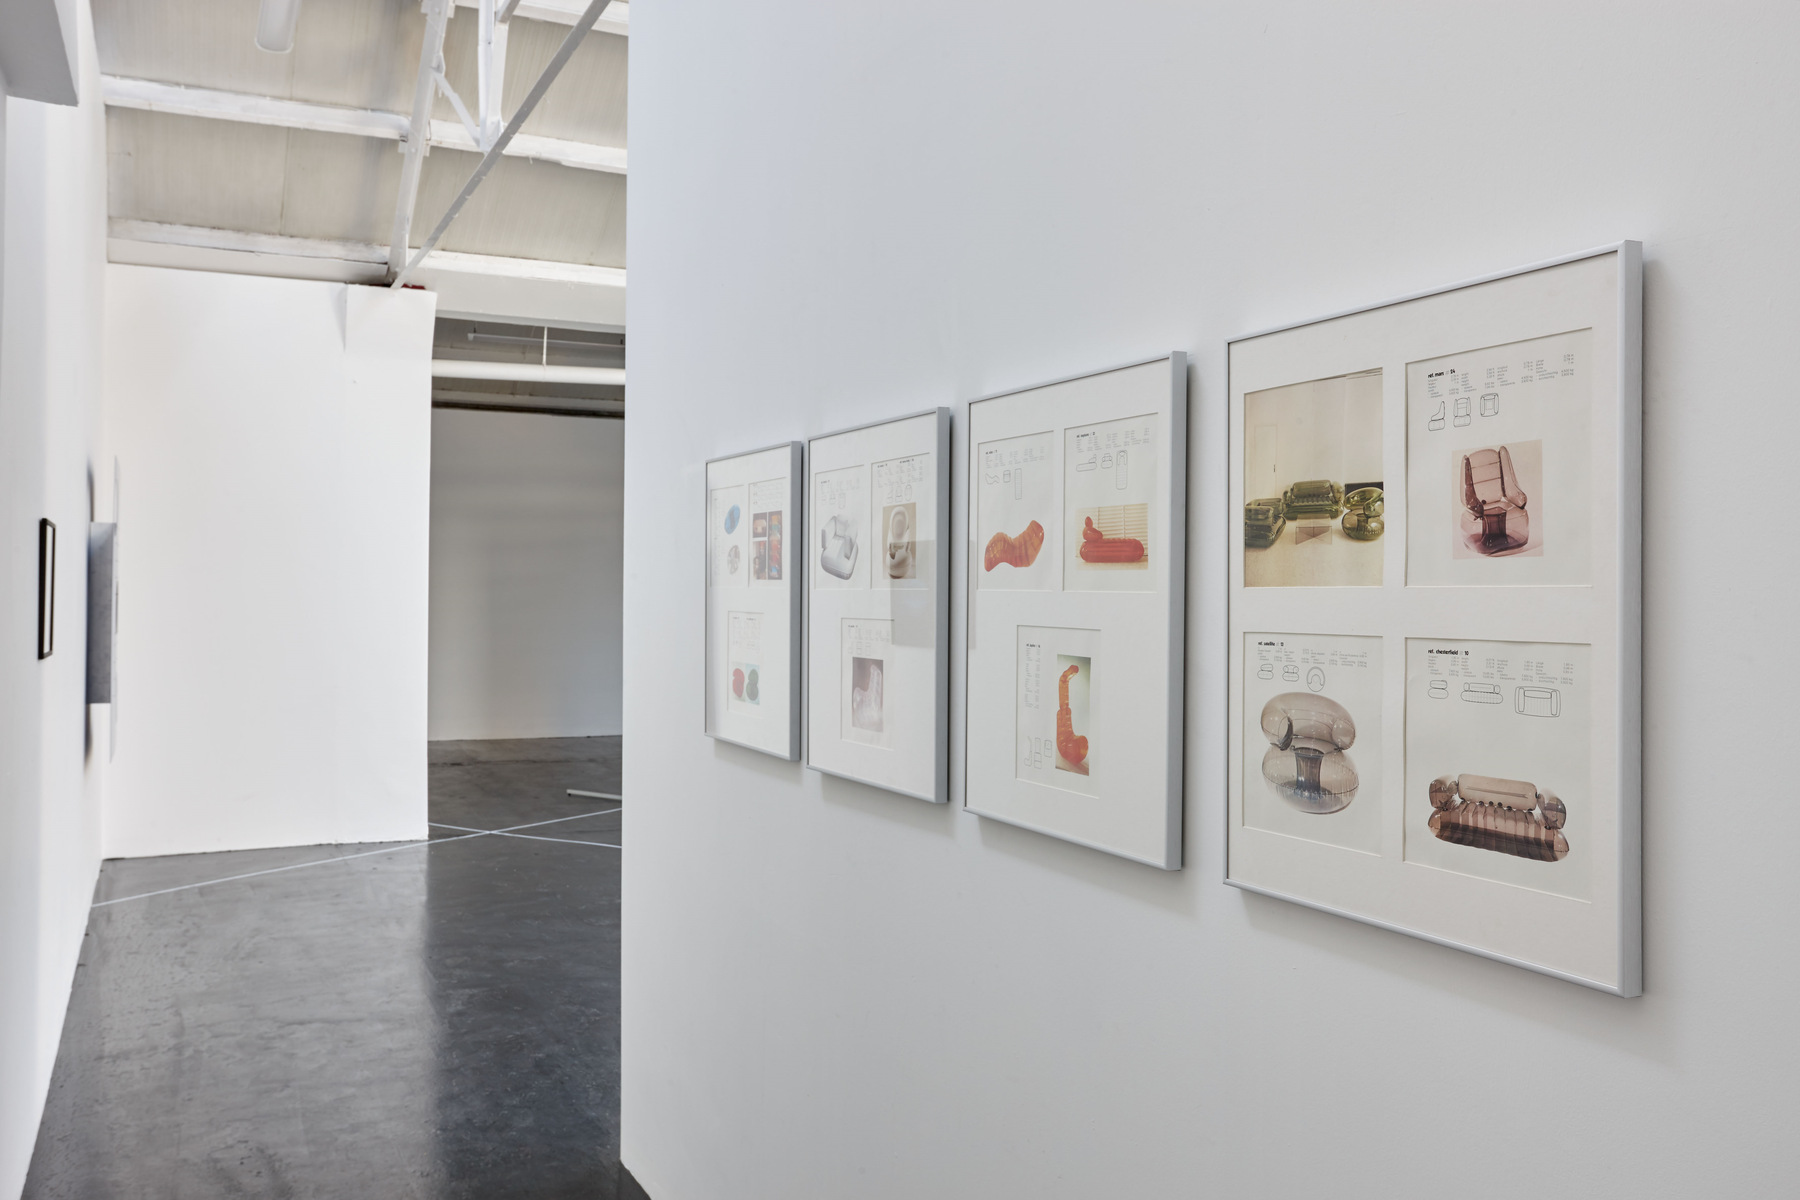 System of a Down - Installation view 01